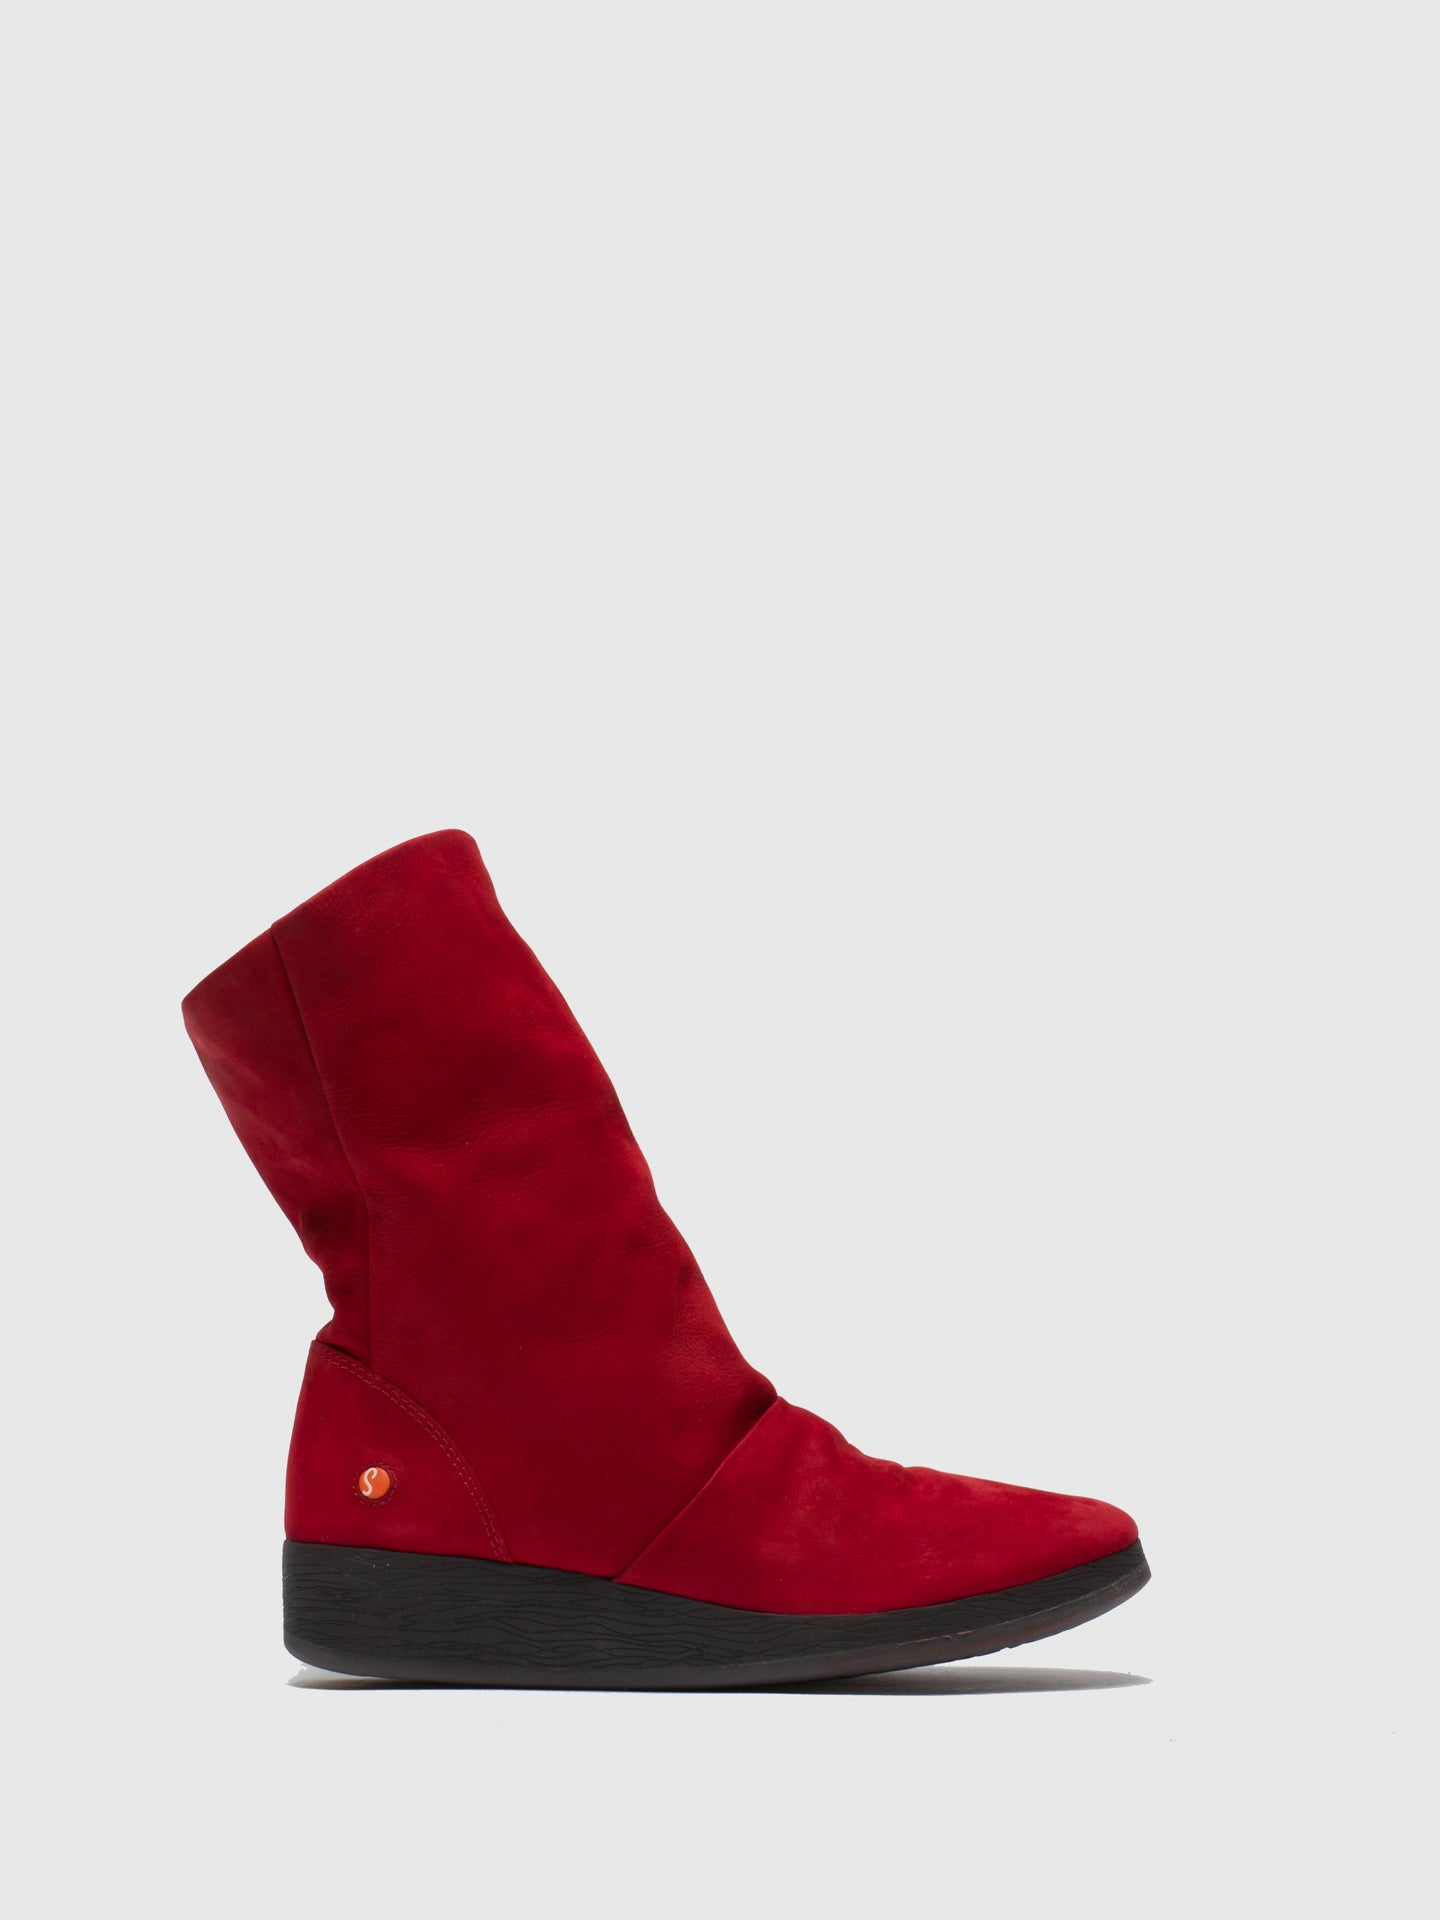 SOFTINOS Red Wedge Ankle Boots